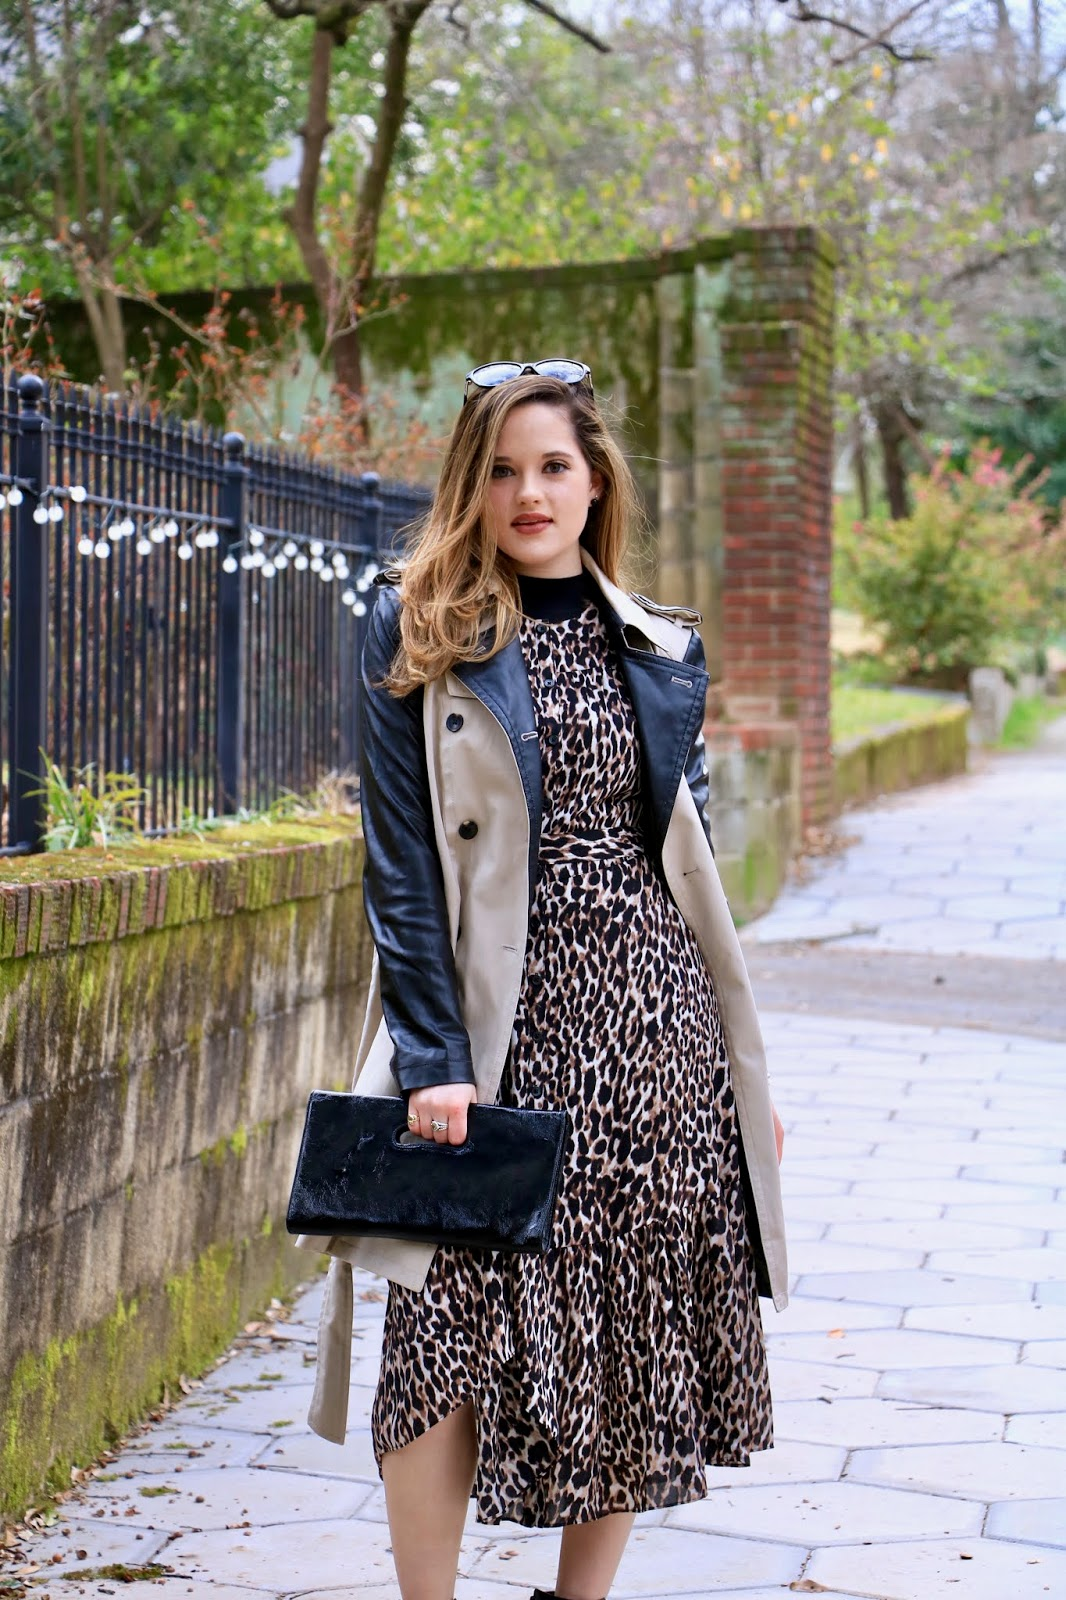 Nyc fashion blogger Kathleen Harper wearing a spring work outfit.